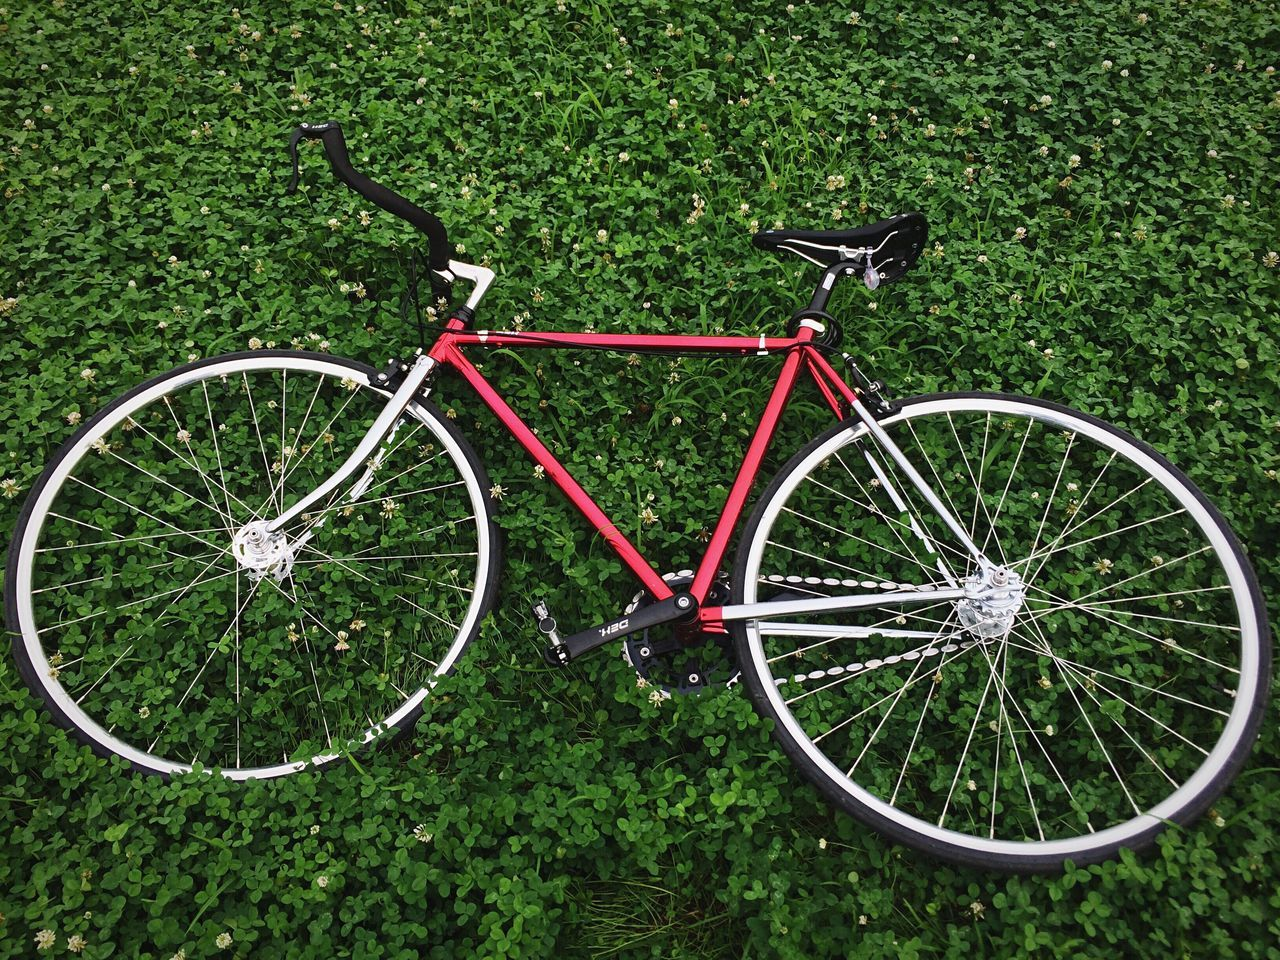 High Angle View Of Bicycle On Green Field With Plants